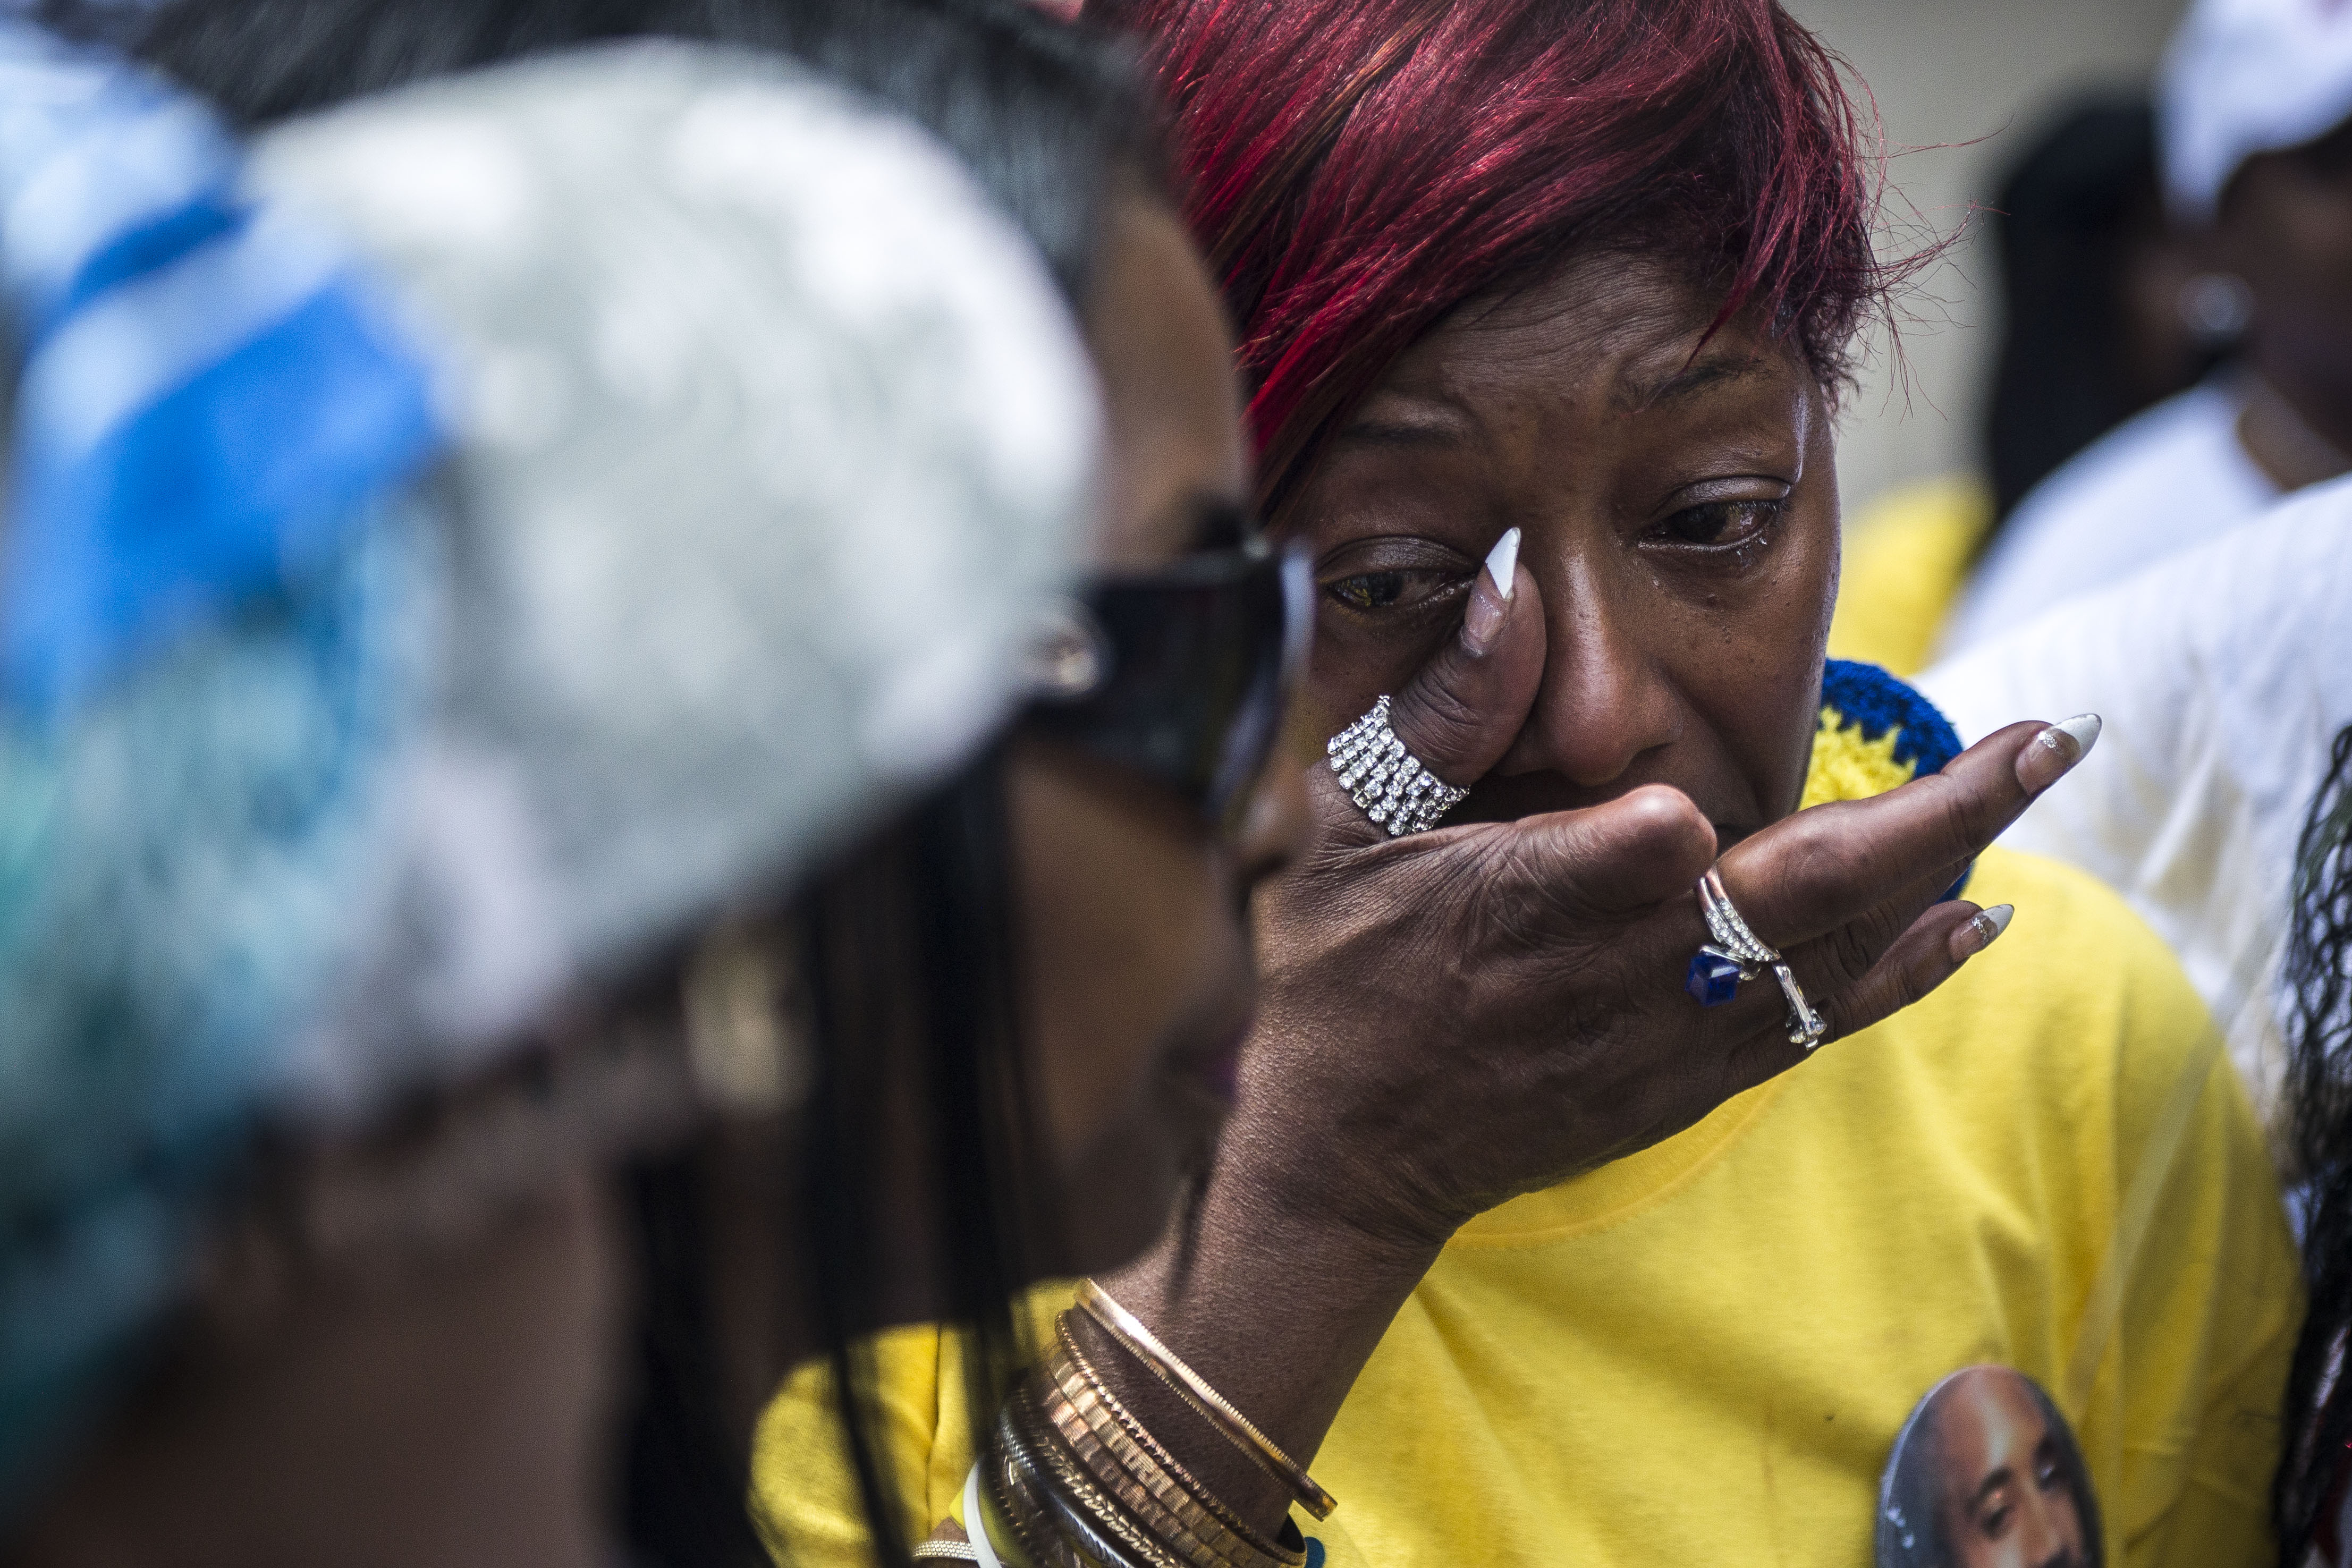 WASHINGTON, DC - MARCH 9:                                         Maria Hamilton, whose 31-year-old son Dontre was shot and killed by former Milwaukee Police Officer Christopher Manney in Red Arrow Park, WI, mourns during the Million Mom March, organized by Mothers for Justice, on May 9, 2015 in Washington, D.C.